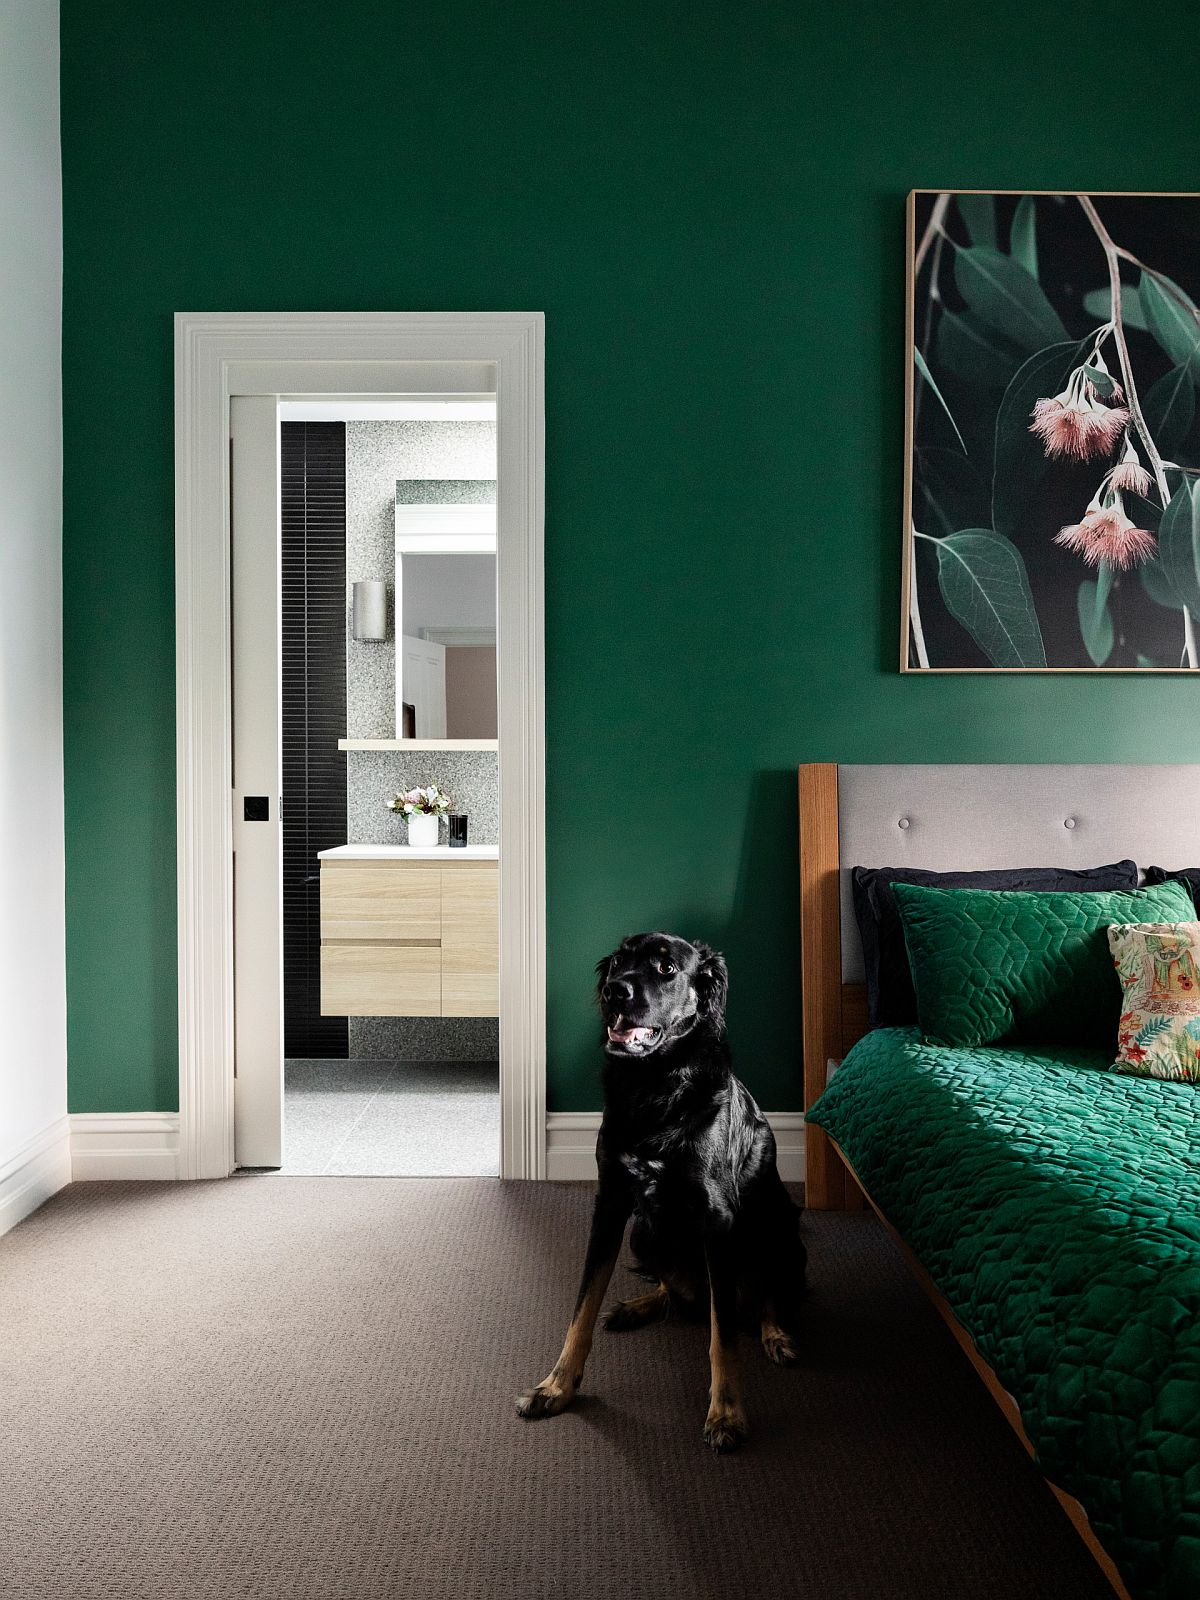 Contemporary bedroom in deep green with white accents feels refreshing and urbane